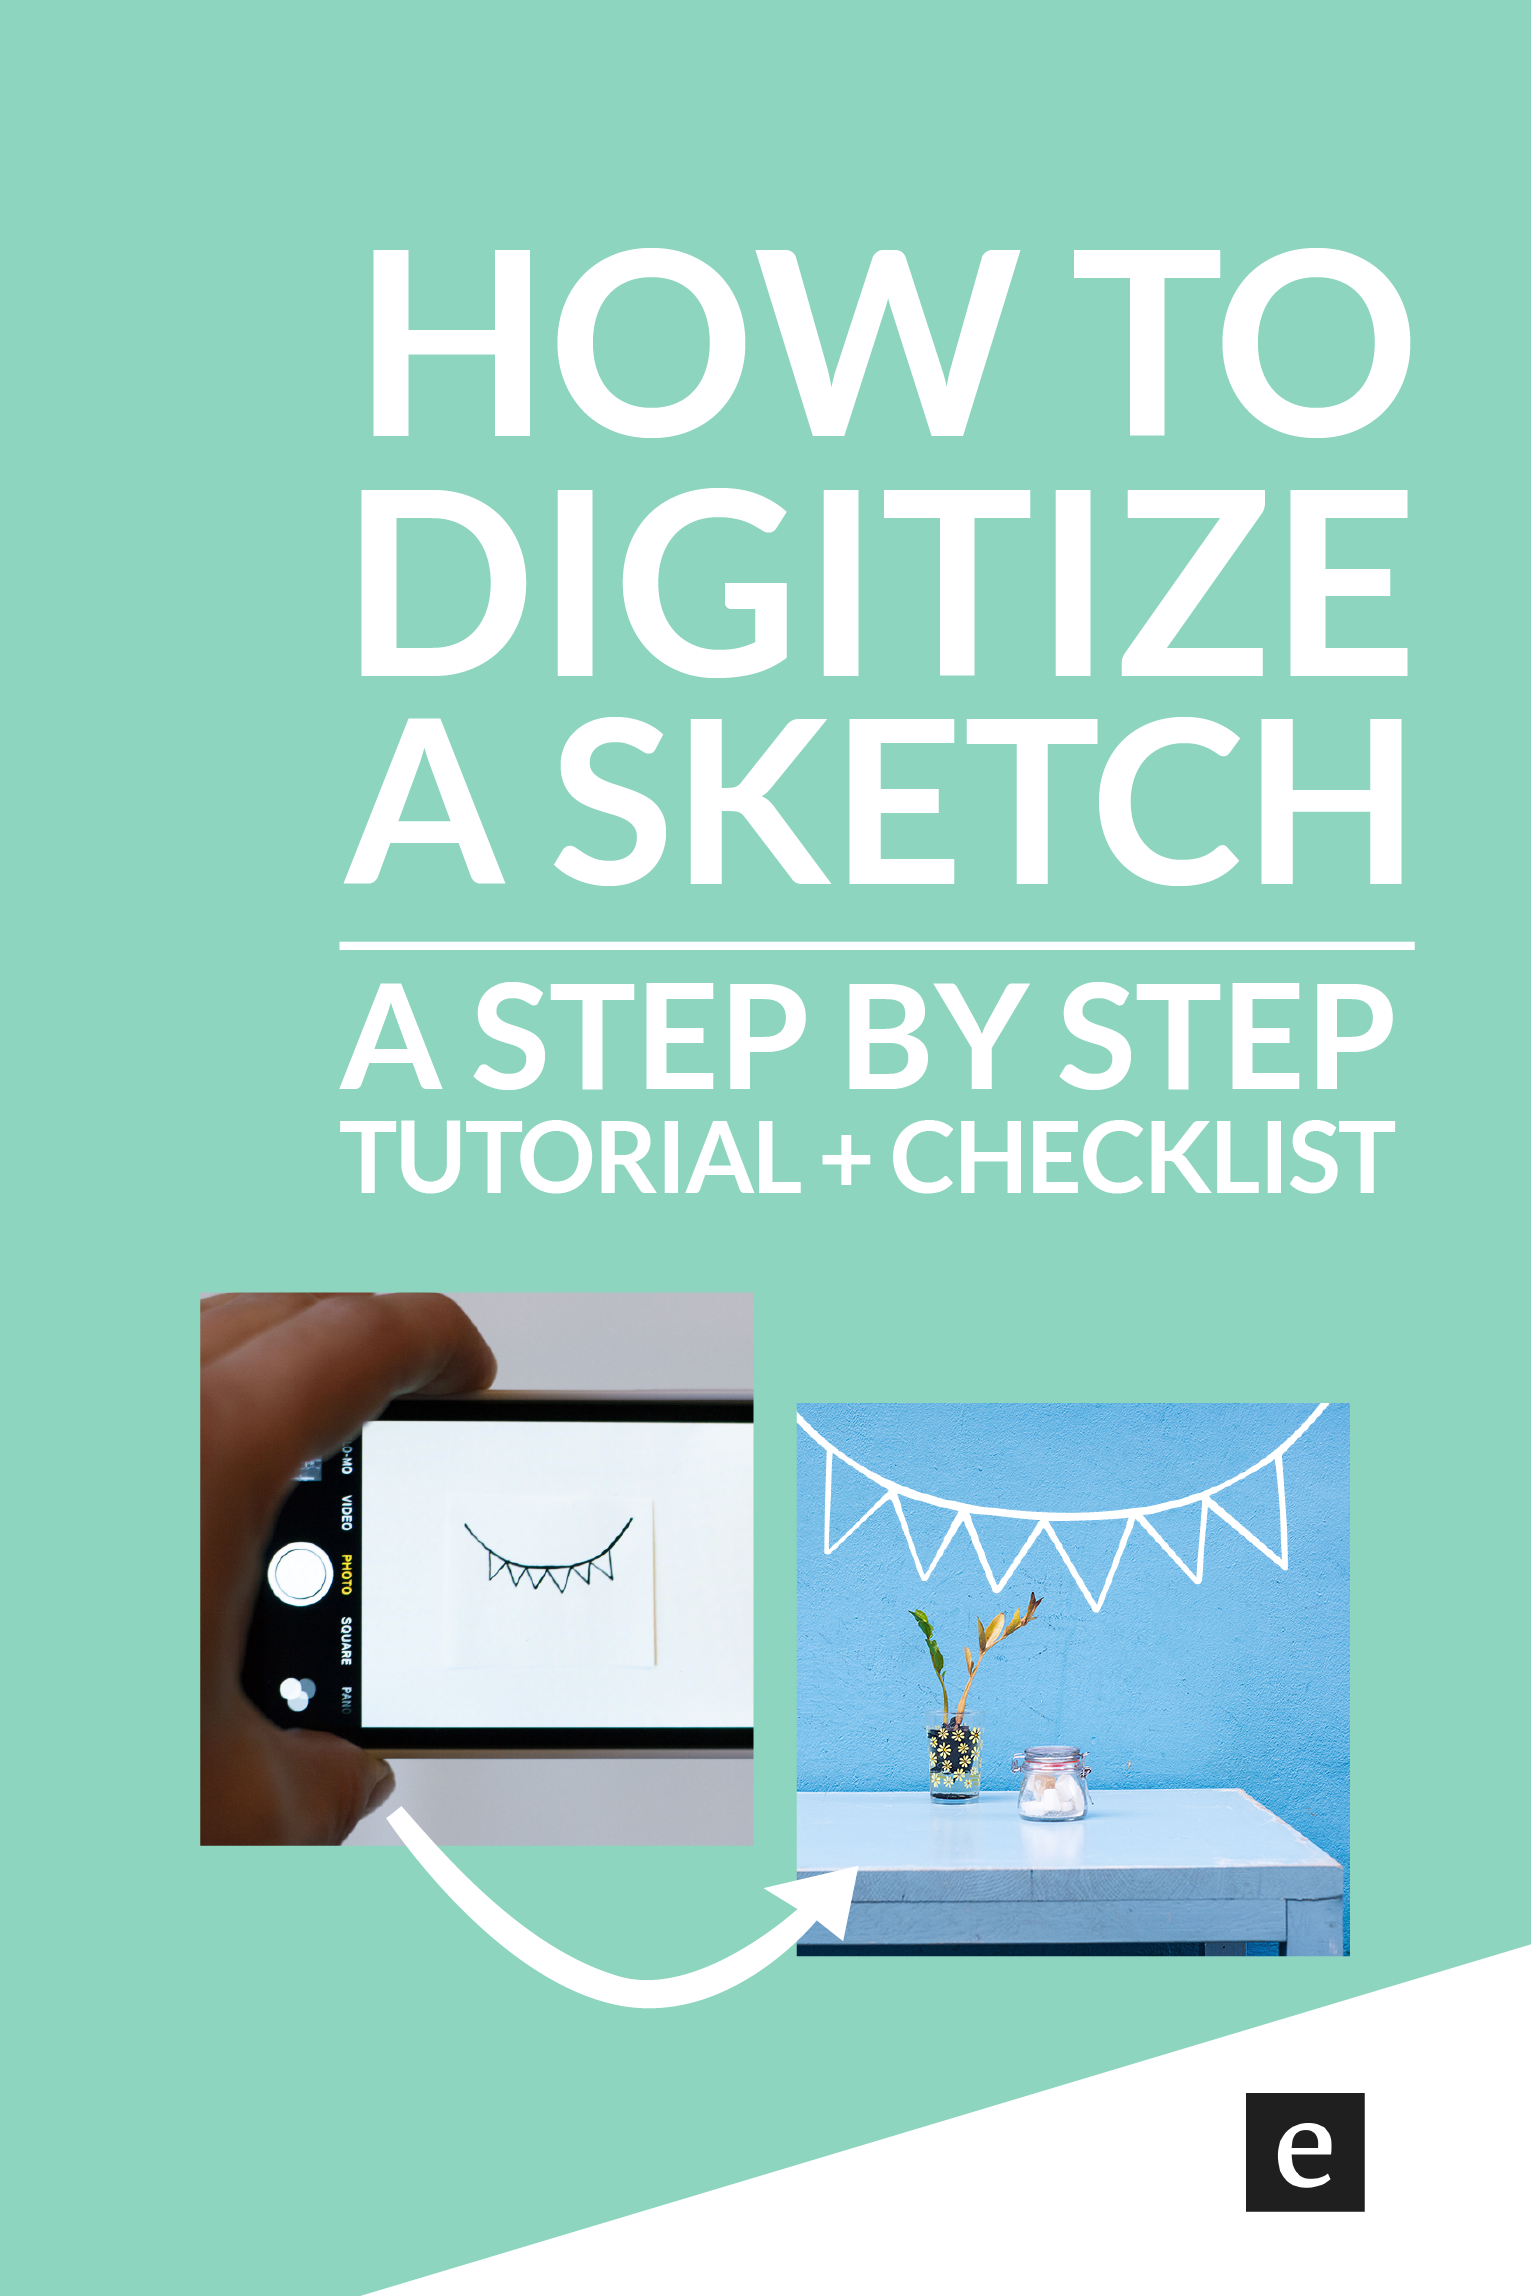 How To Turn A Sketch Into Digital Art